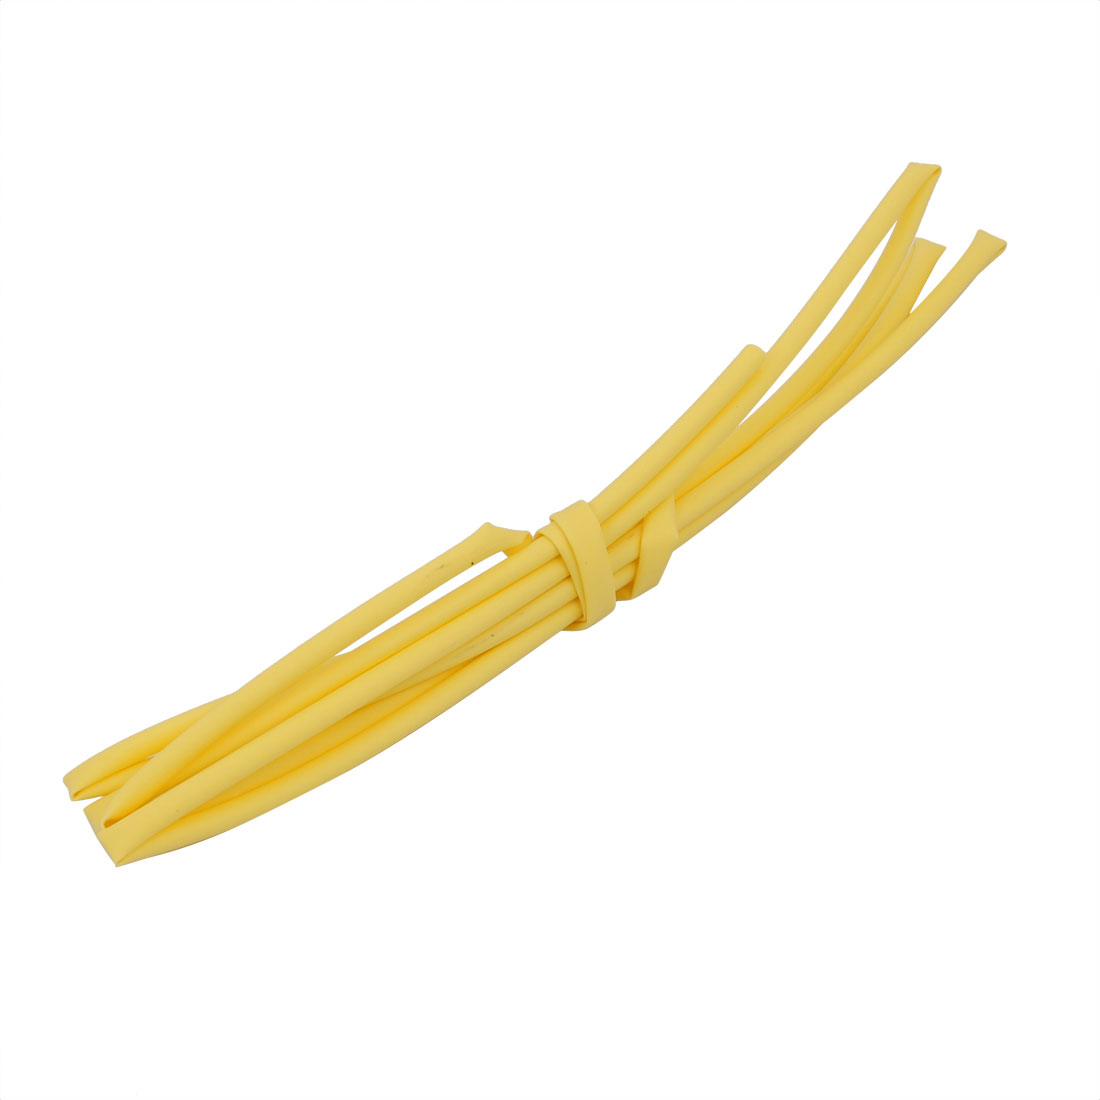 1M 0.06in Inner Dia Polyolefin Flame Retardant Tube Yellow for Wire Repairing